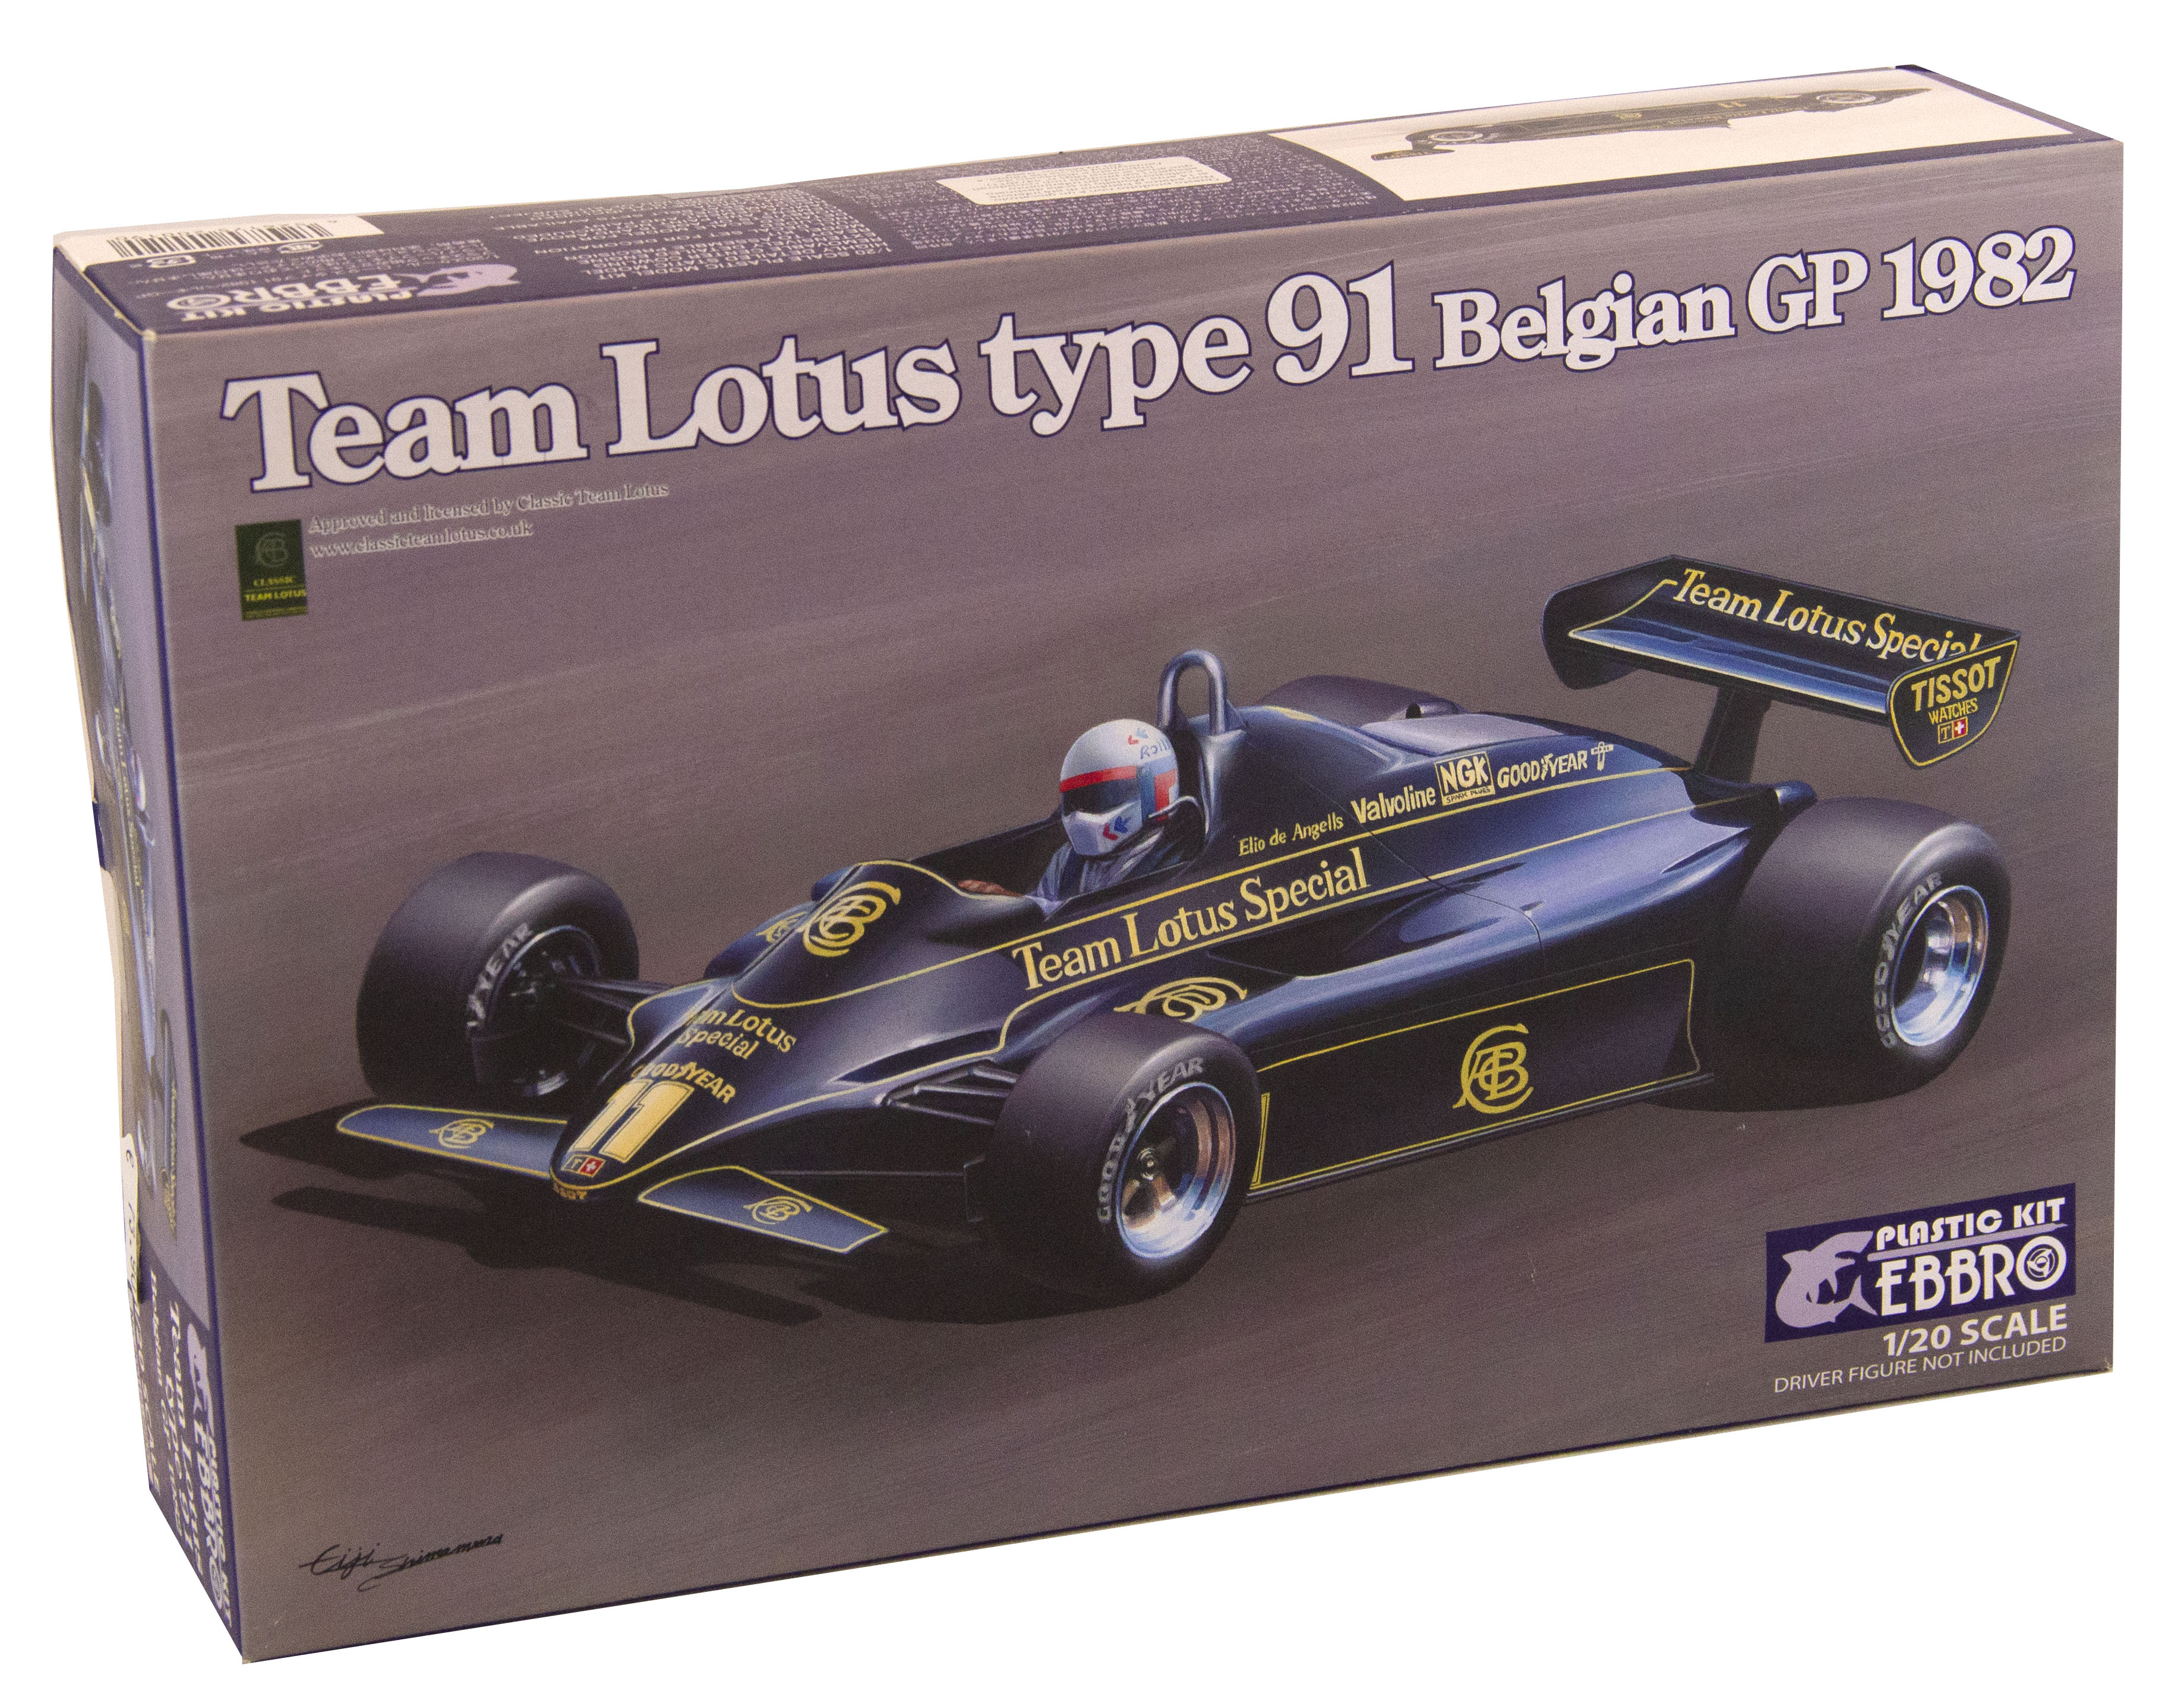 Kit Team Lotus Type 91 Belgian Gp 1982 1/20